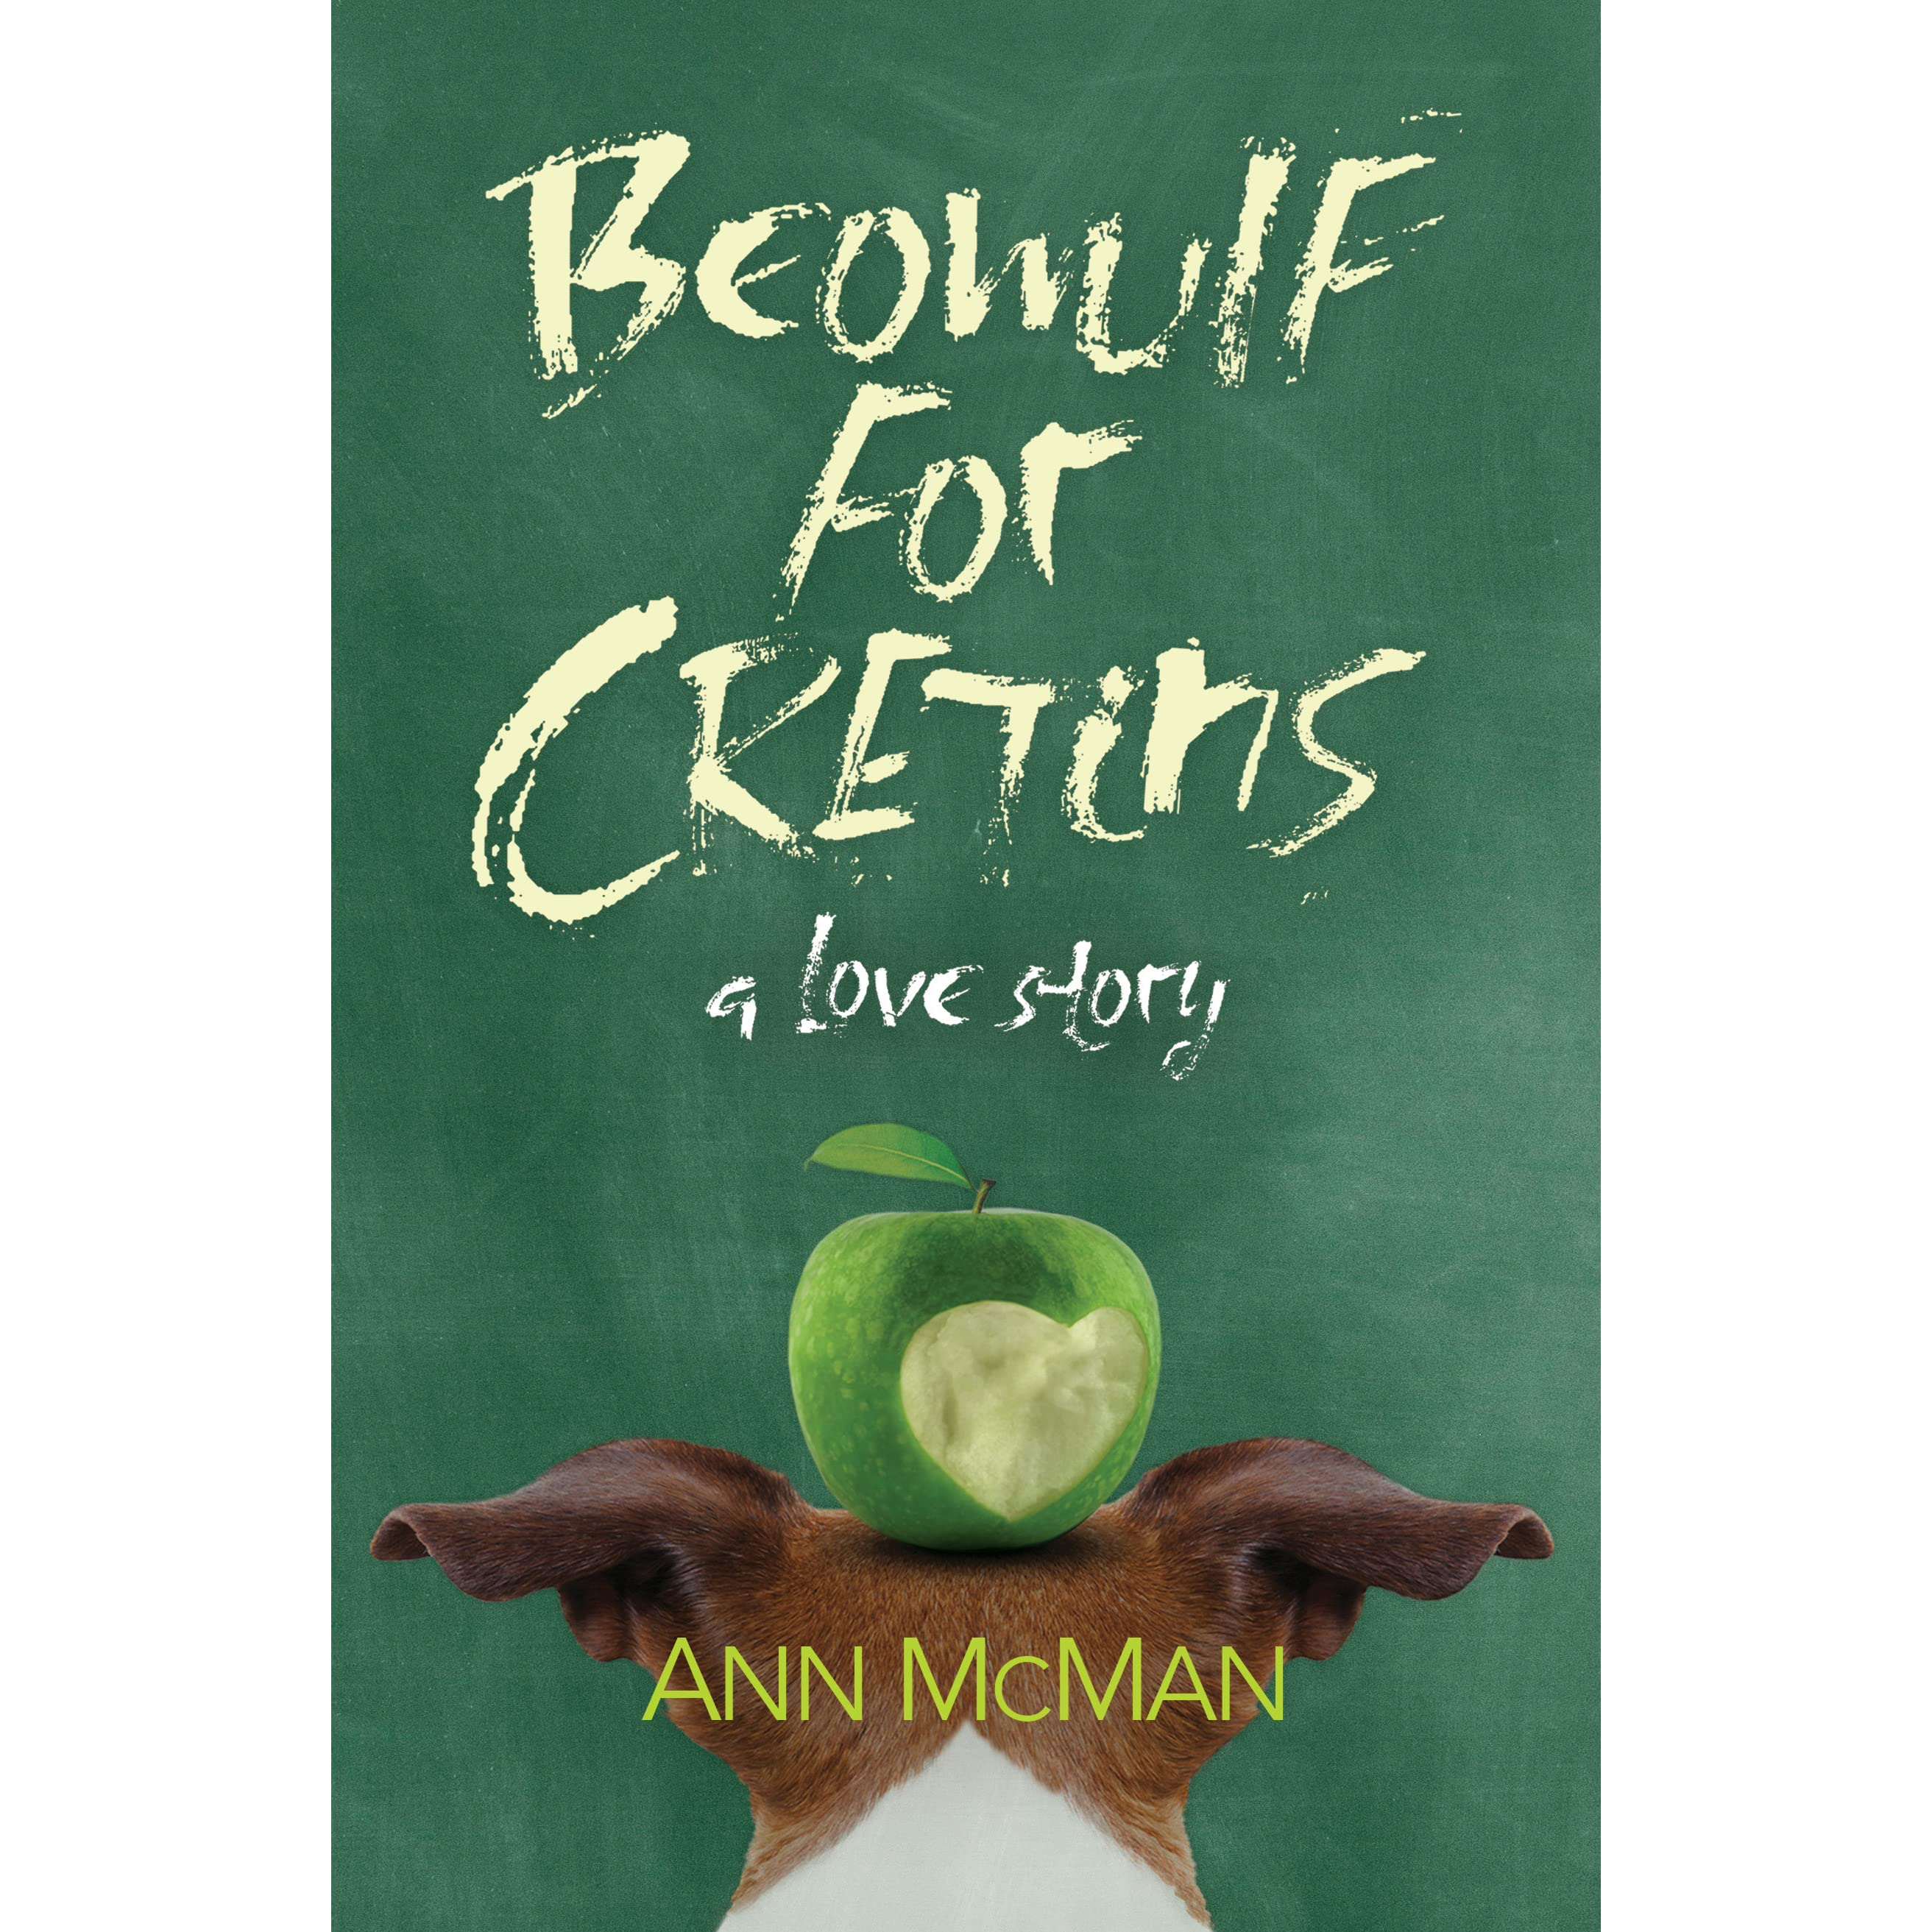 Image result for book cover beowulf for cretins